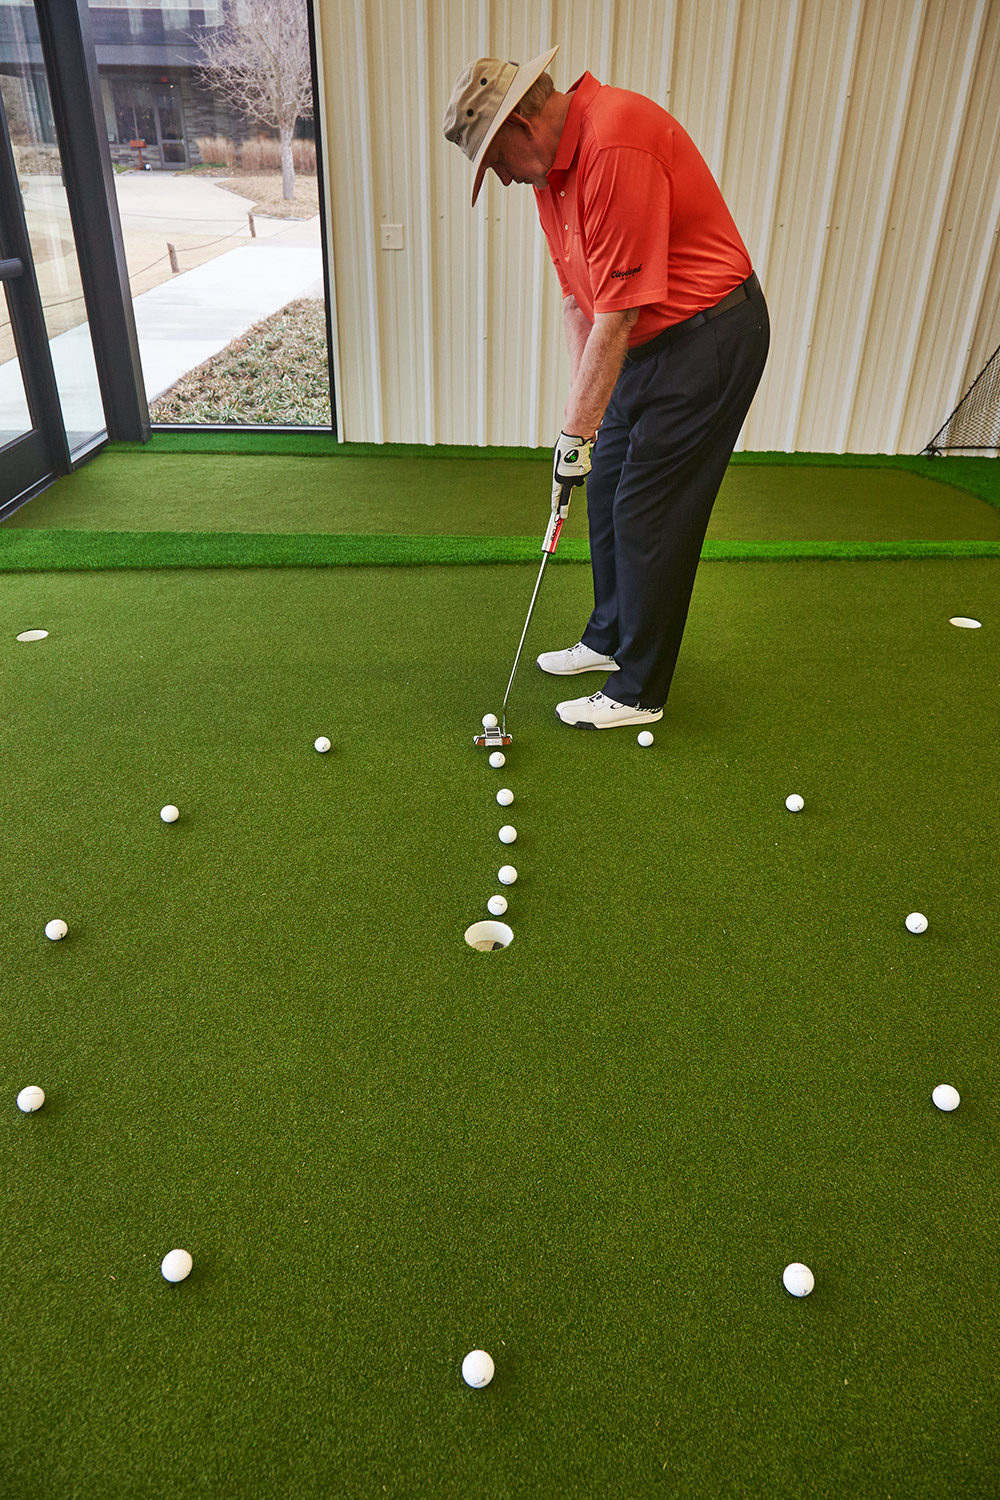 Roll straight putts from long range, then breaking three-footers. By focusing on the variables that influence roll, you'll improve your contact.